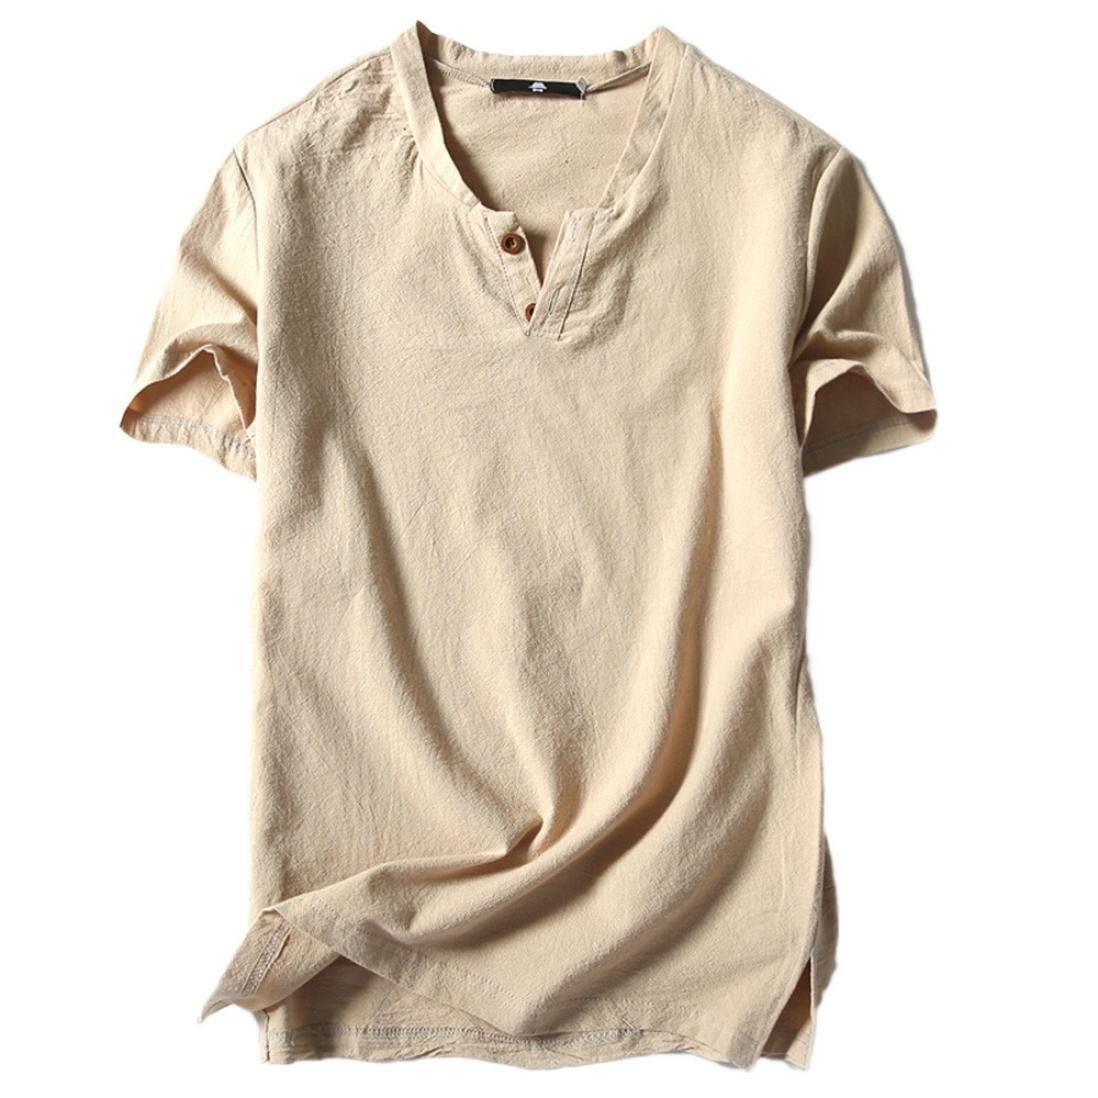 08c4f474e05af Top1  Clearance Sale! Wintialy Men s Summer Casual Linen and Cotton Short  Sleeve V-Neck T-Shirt Top Blouse Tee